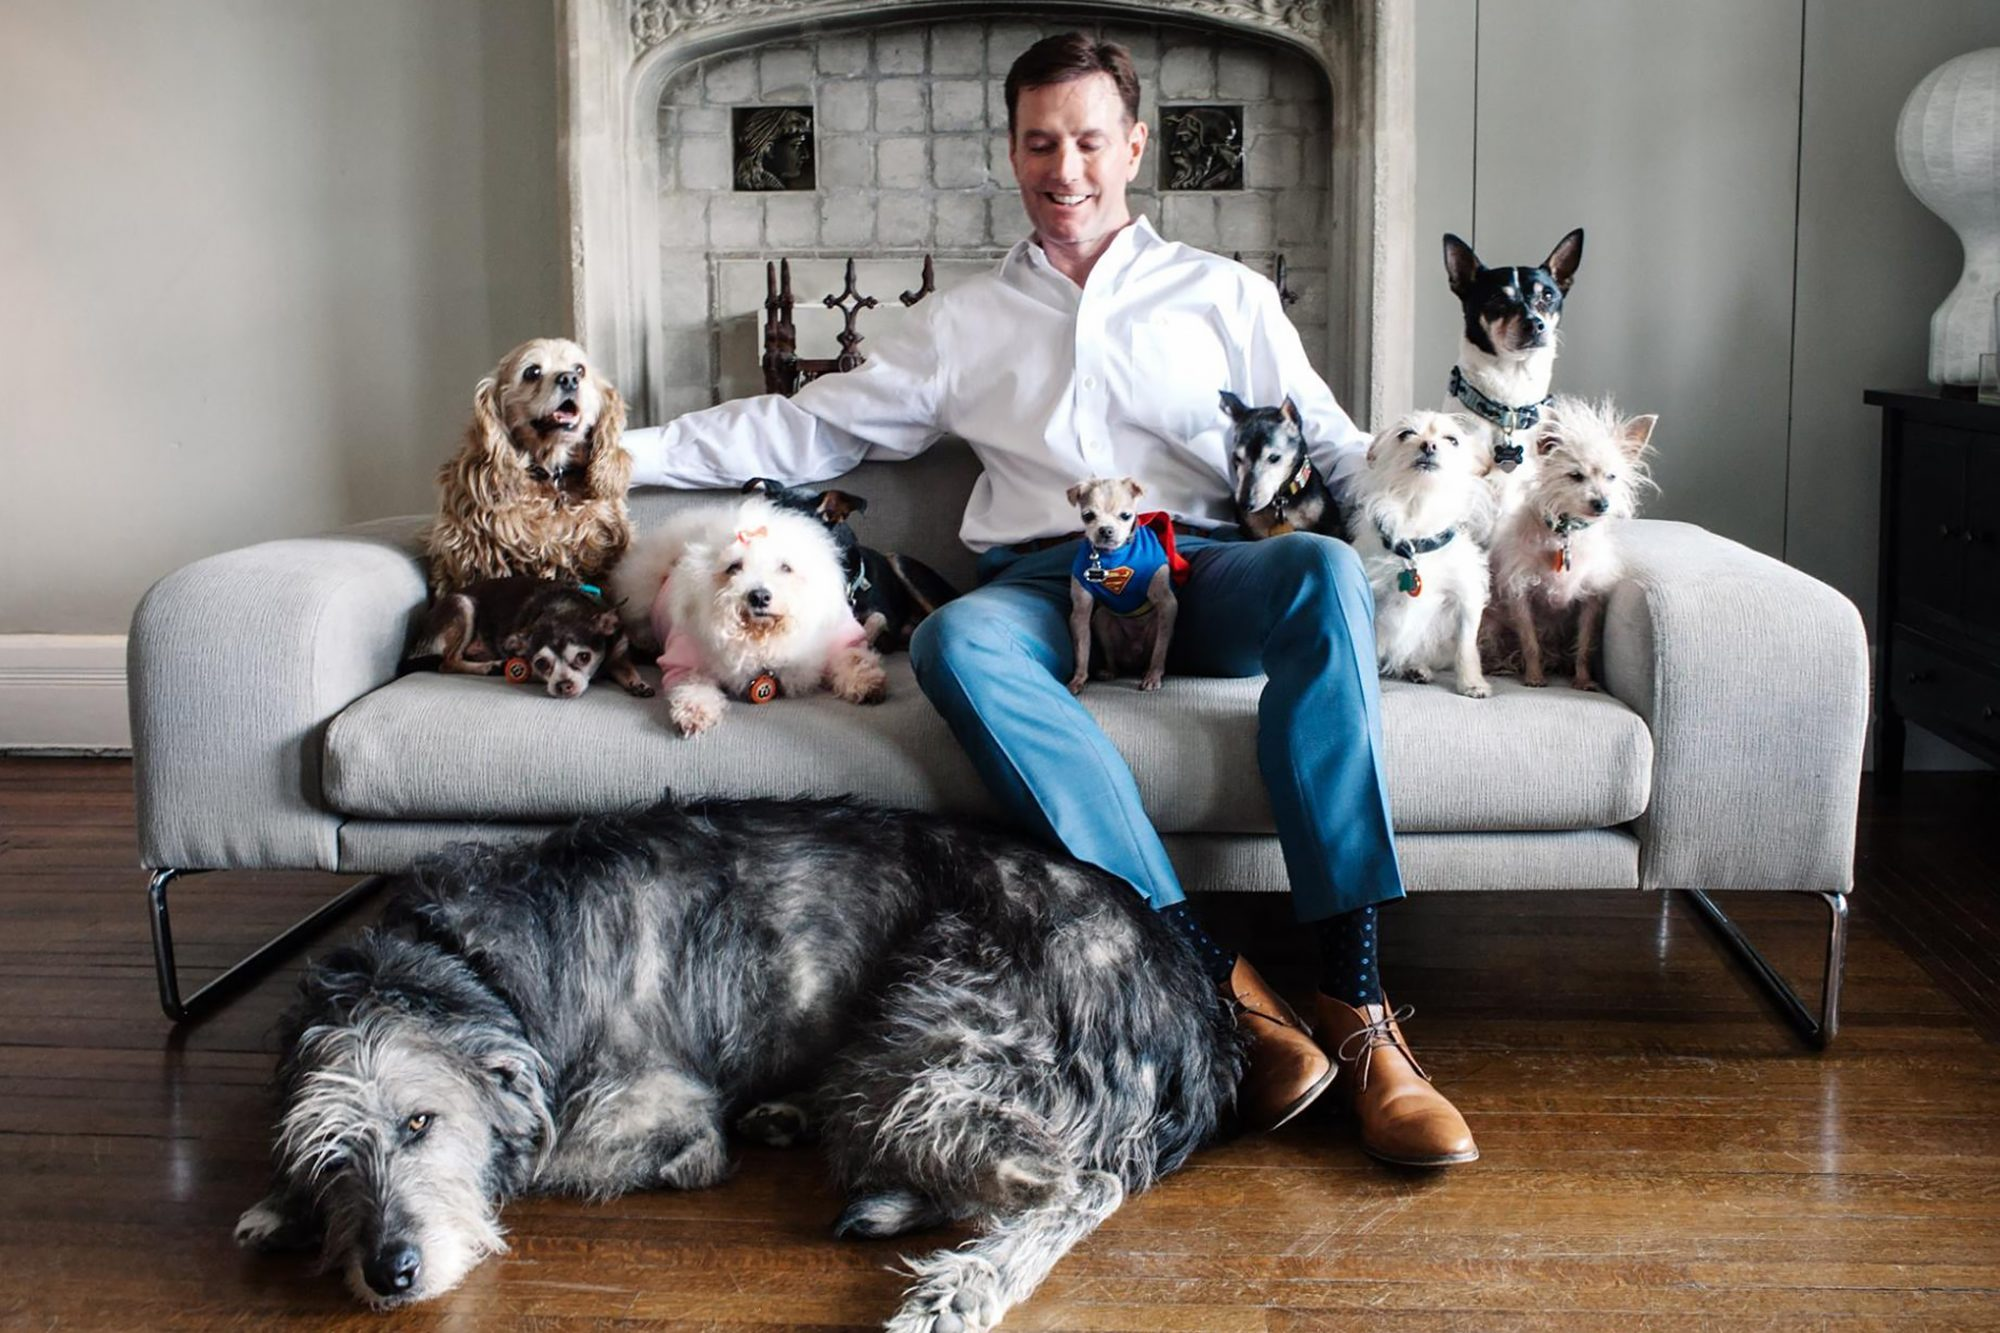 Adult man sits on couch surrounded by senior rescue dogs